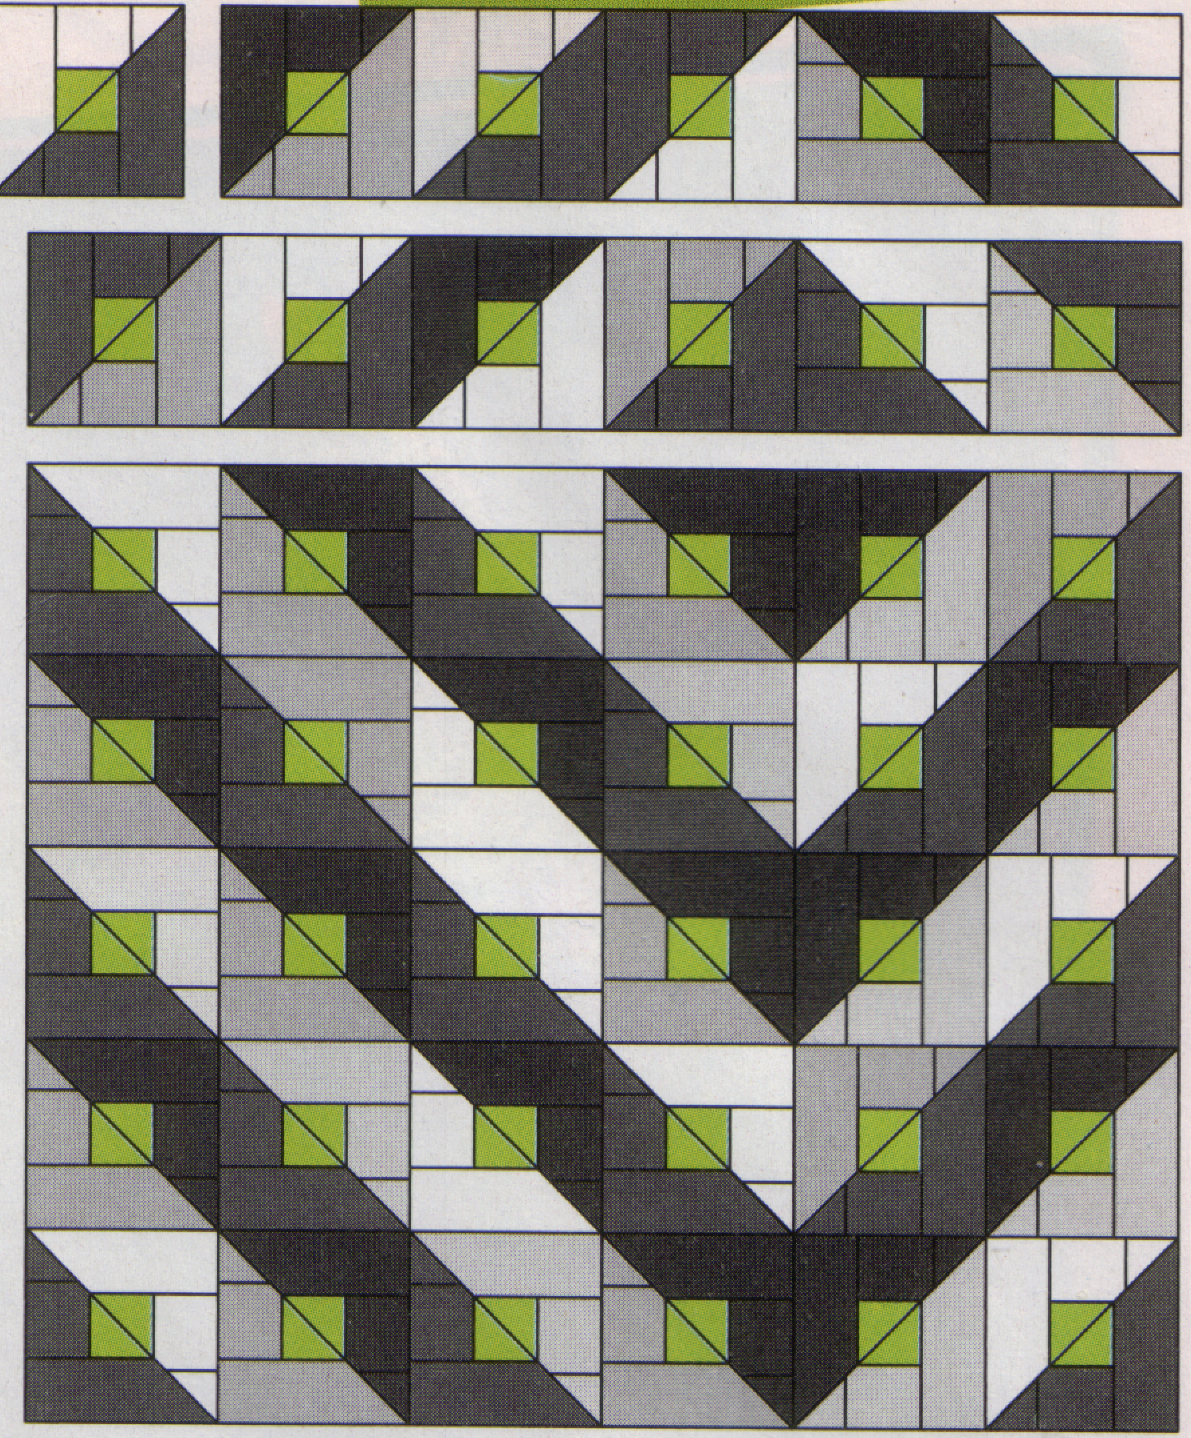 Black And White Quilt Page 3